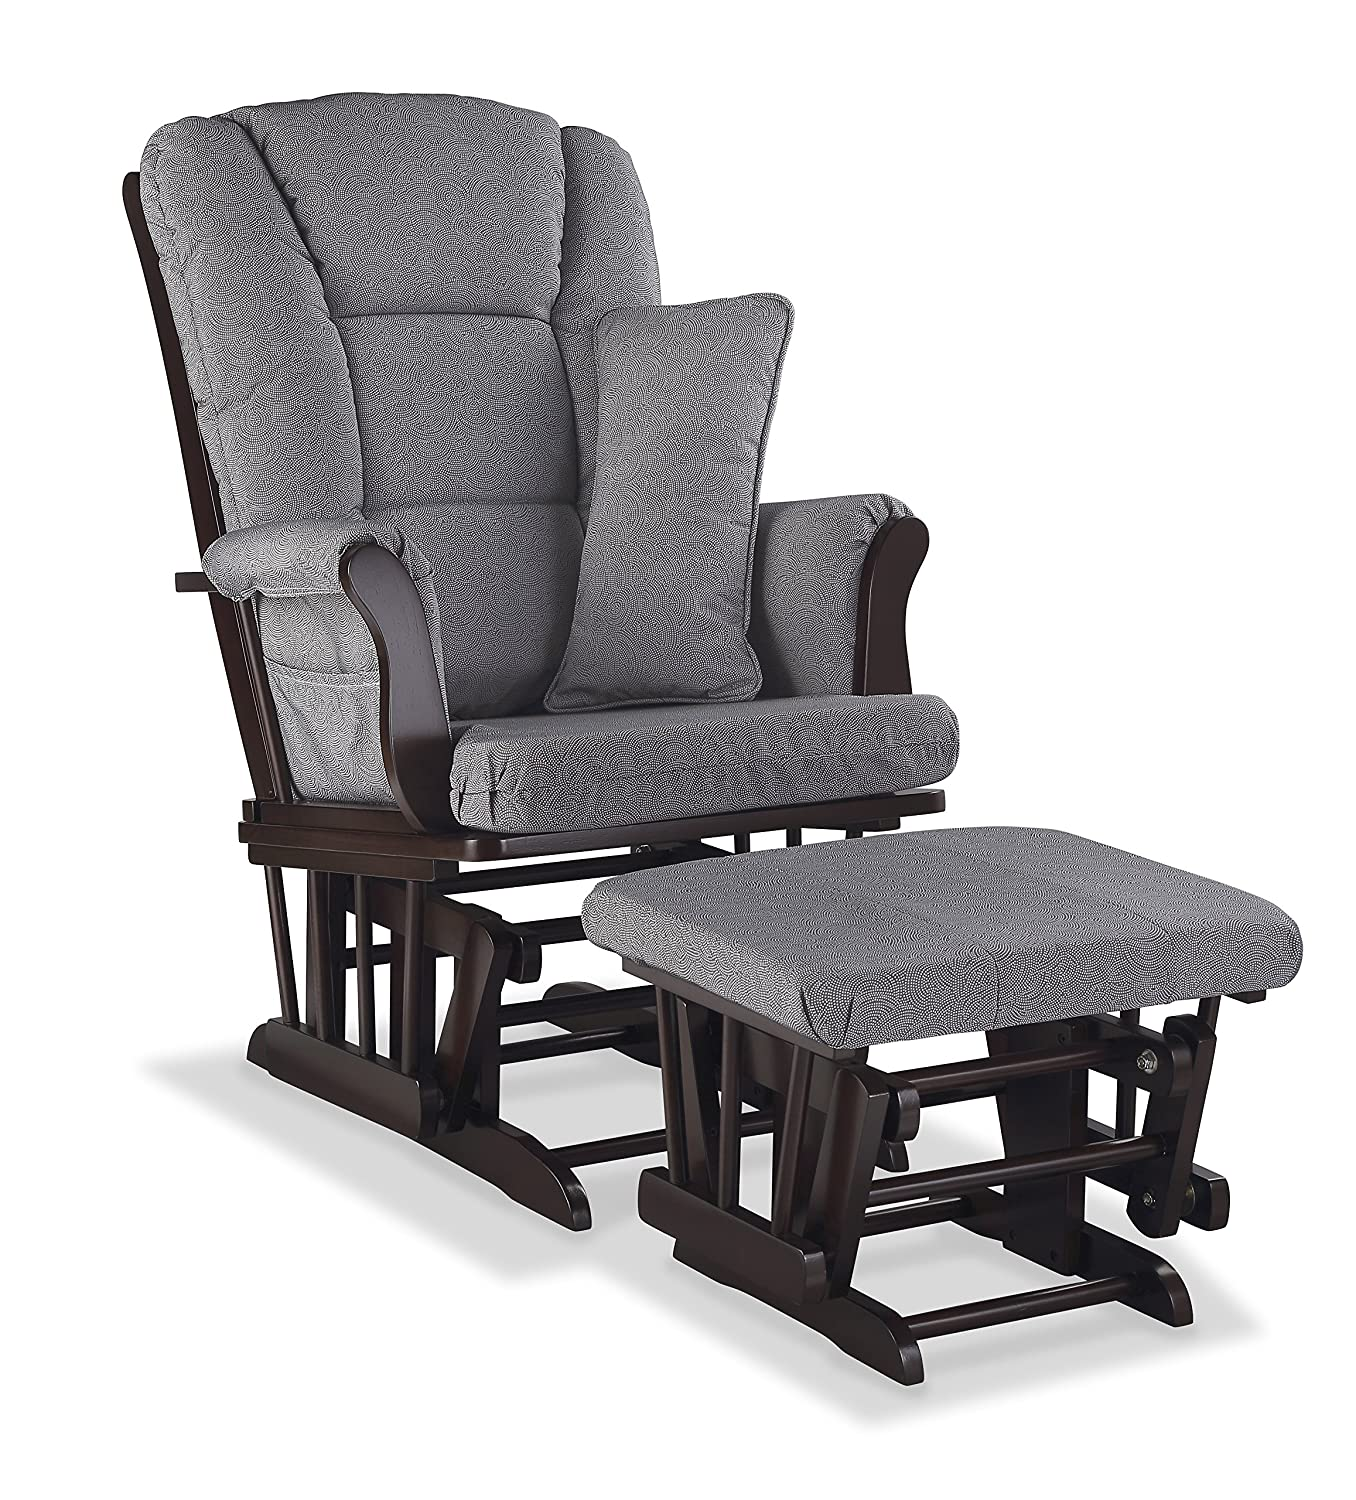 Storkcraft Tuscany Custom Glider and Ottoman with Free Lumbar Pillow, Espresso/Slate Gray Swirl Stork Craft 06554-559